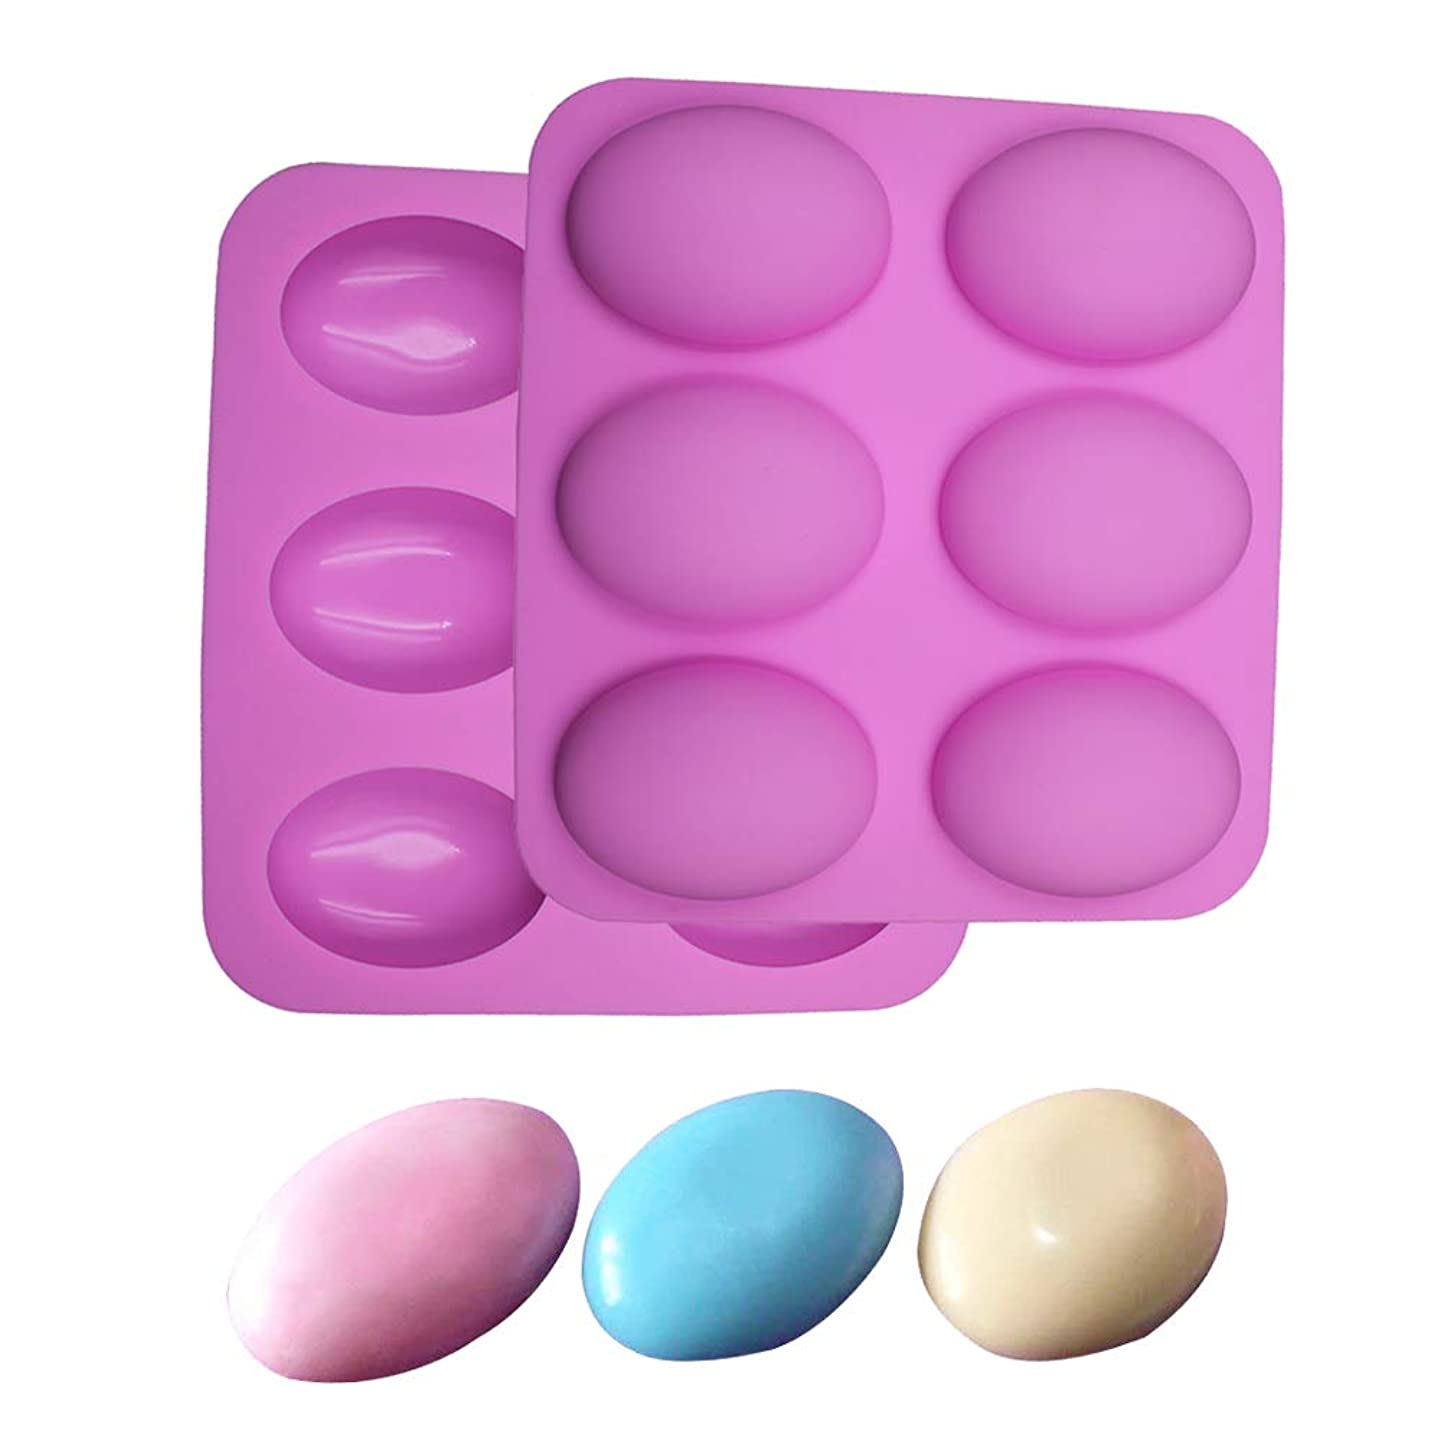 BAKER DEPOT Silicone Mold for Handmade Soap 6 Cavity Goose Egg Design Pink Color Set of 2